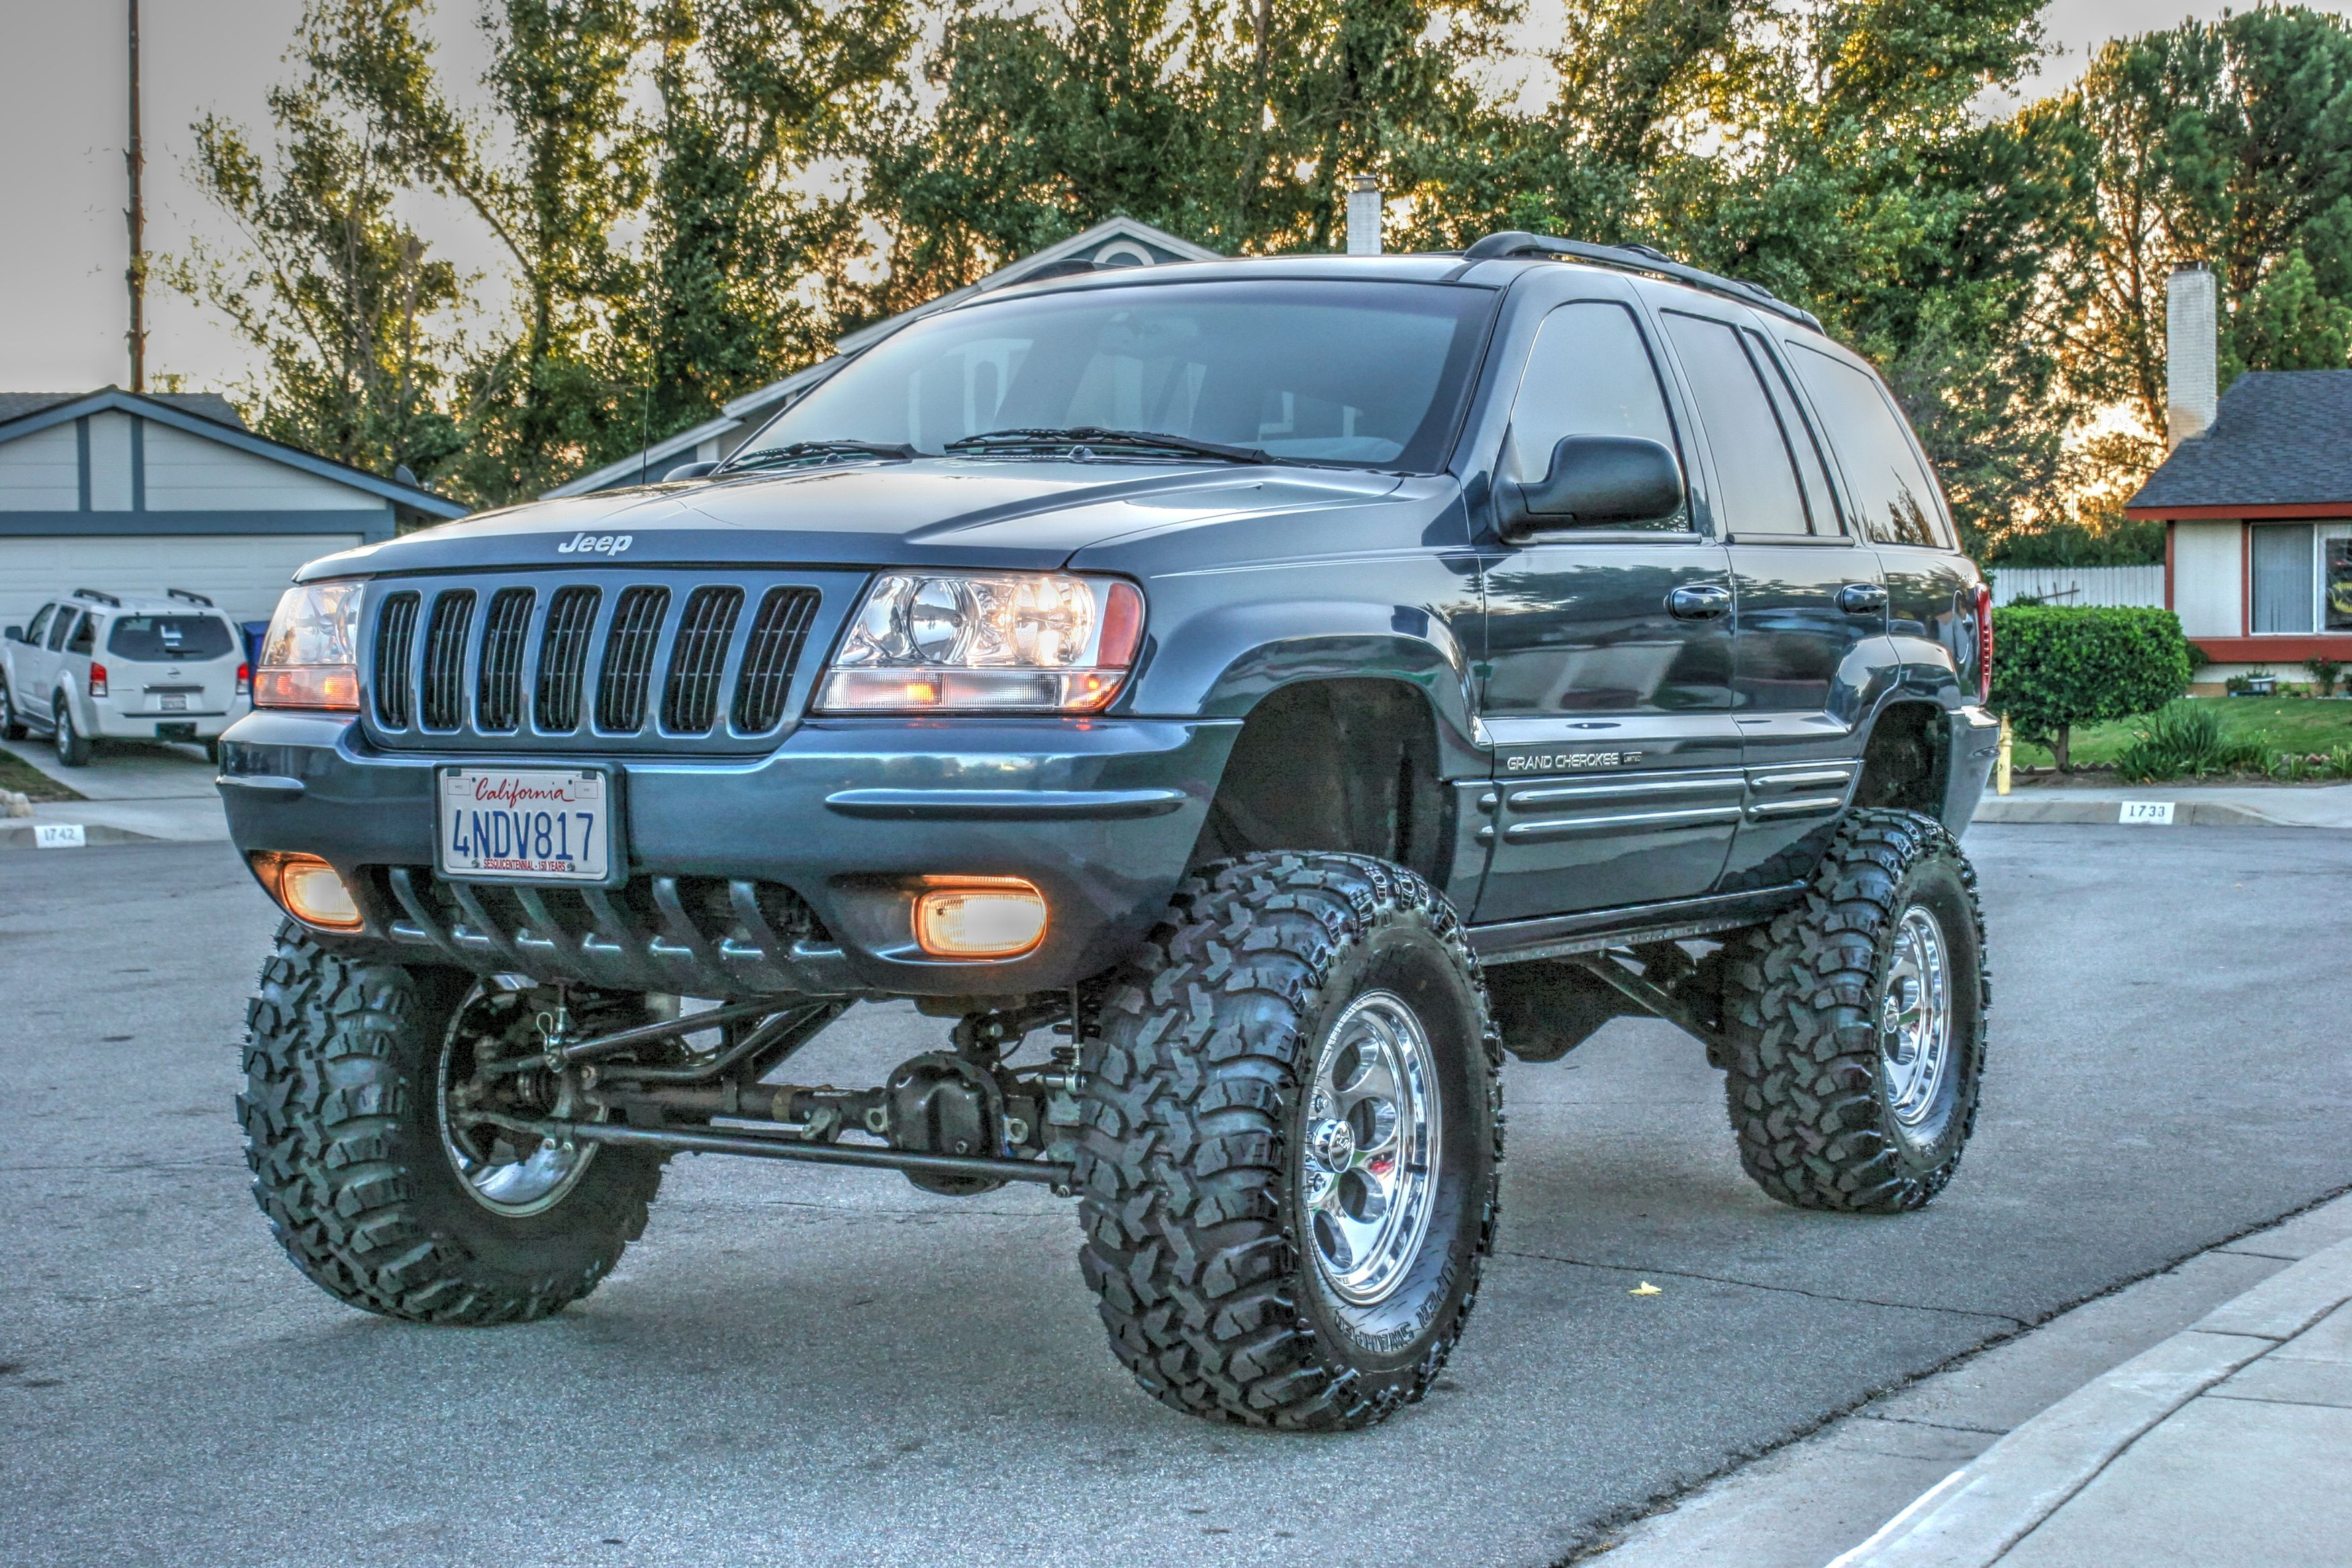 2000 jeep grand cherokee wj rockkrawler 6 5 lift 2 front spacers irok radials. Black Bedroom Furniture Sets. Home Design Ideas